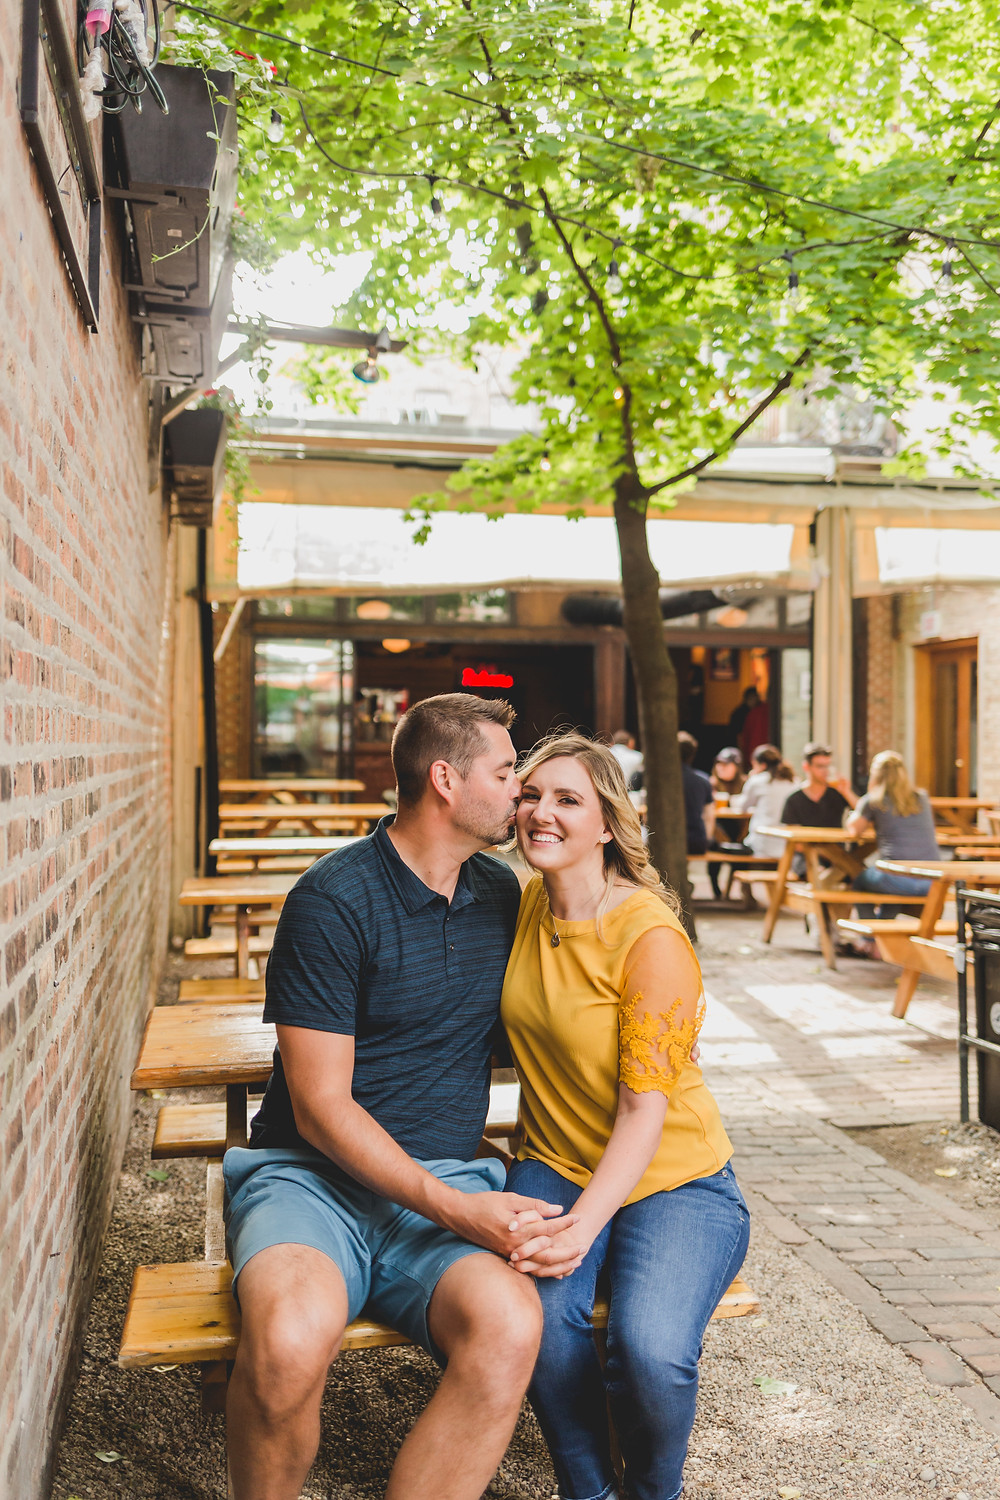 Sheffield's Beer & Wine Garden, Composed and Exposed Photography, engagement session, Northwestern Illinois Photographer